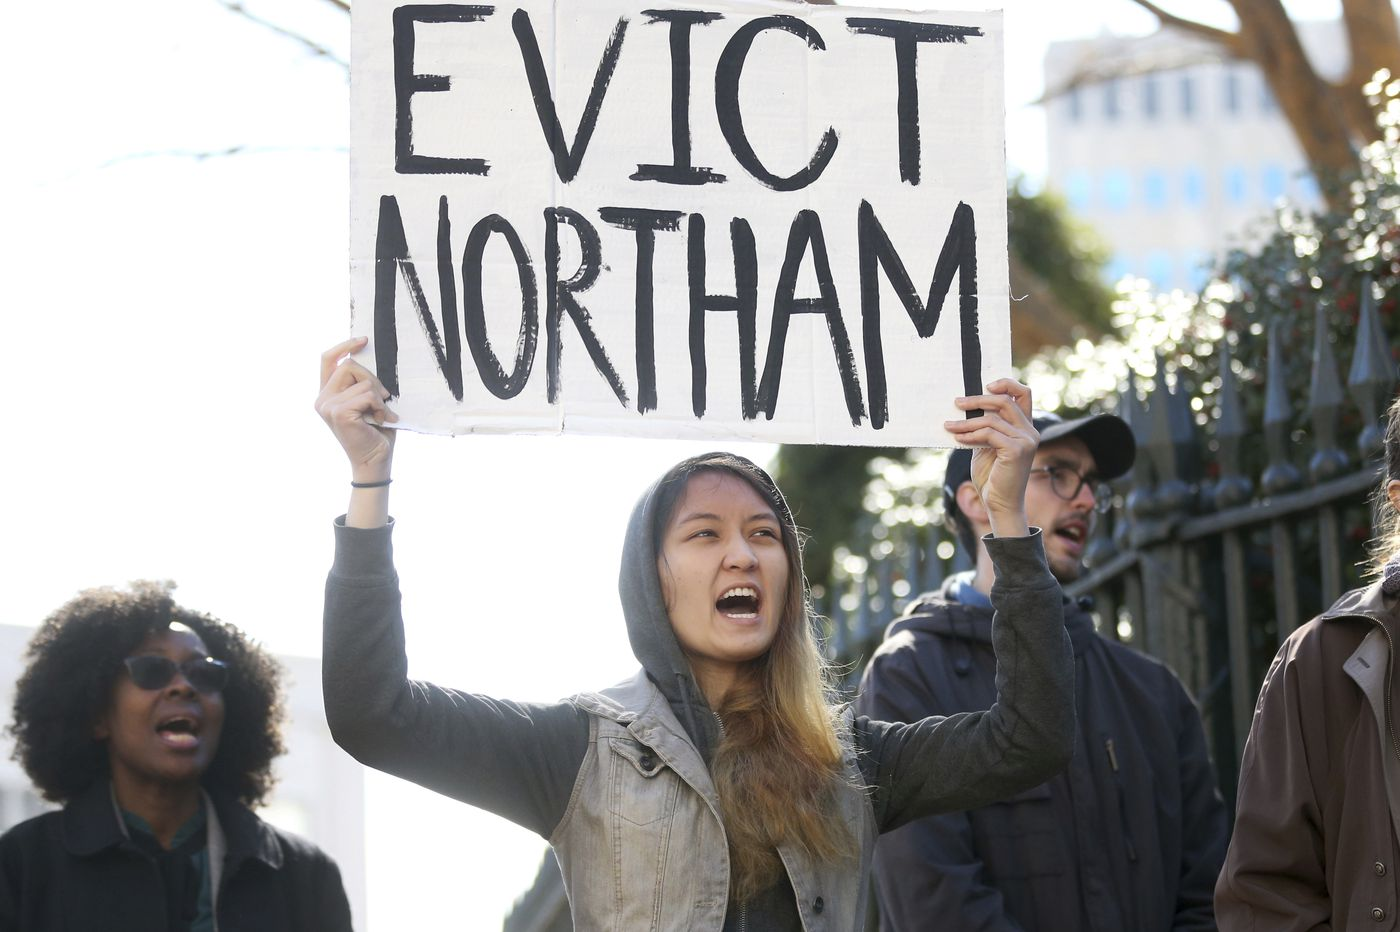 Ralph Northam blackface photo controversy: What we know